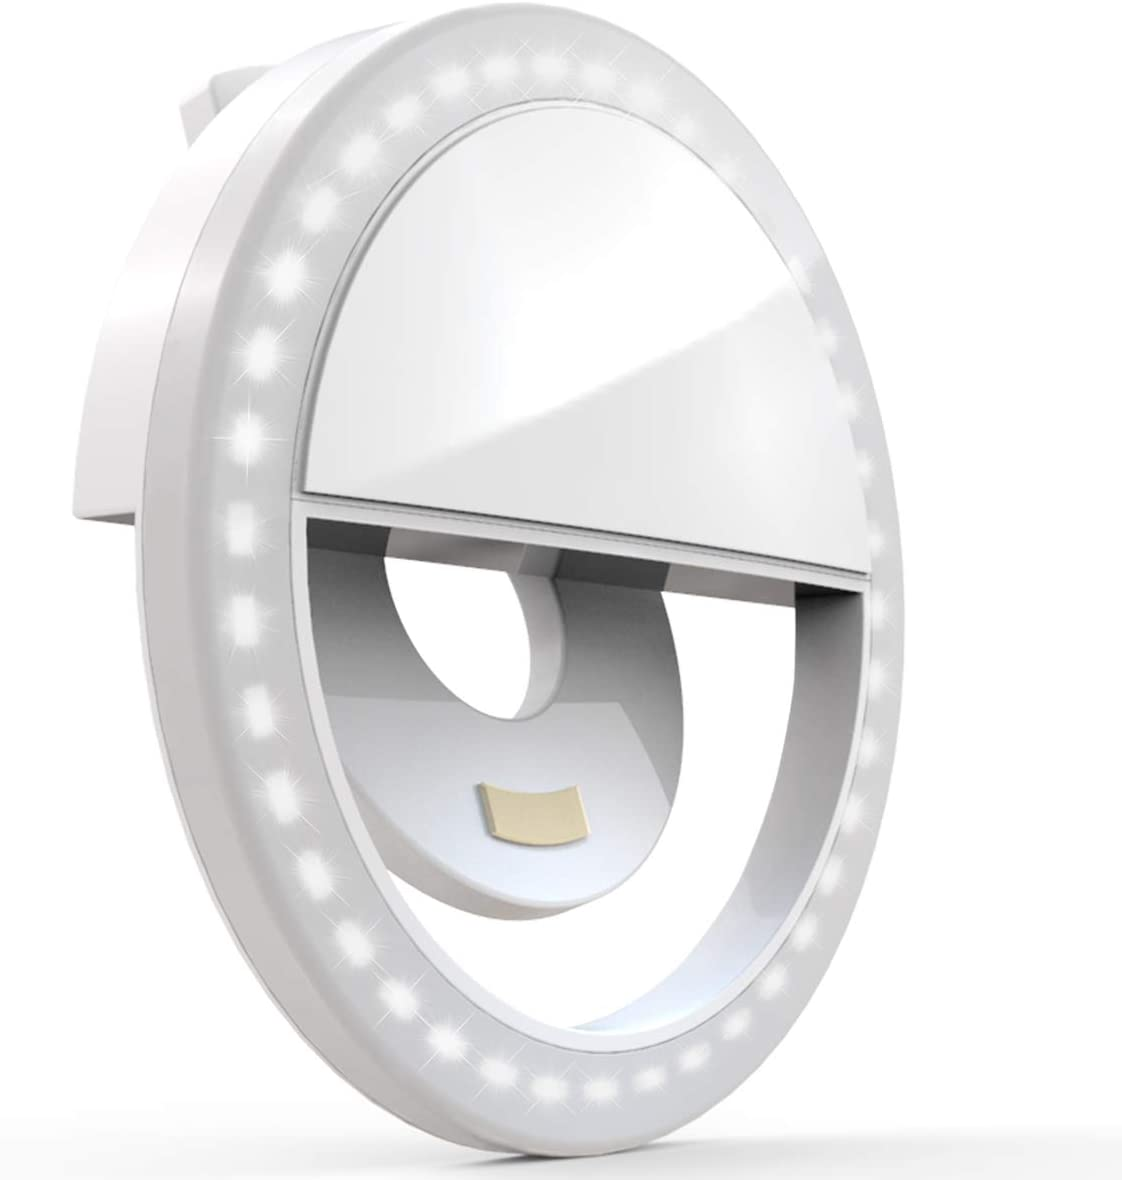 personal selfie ring light